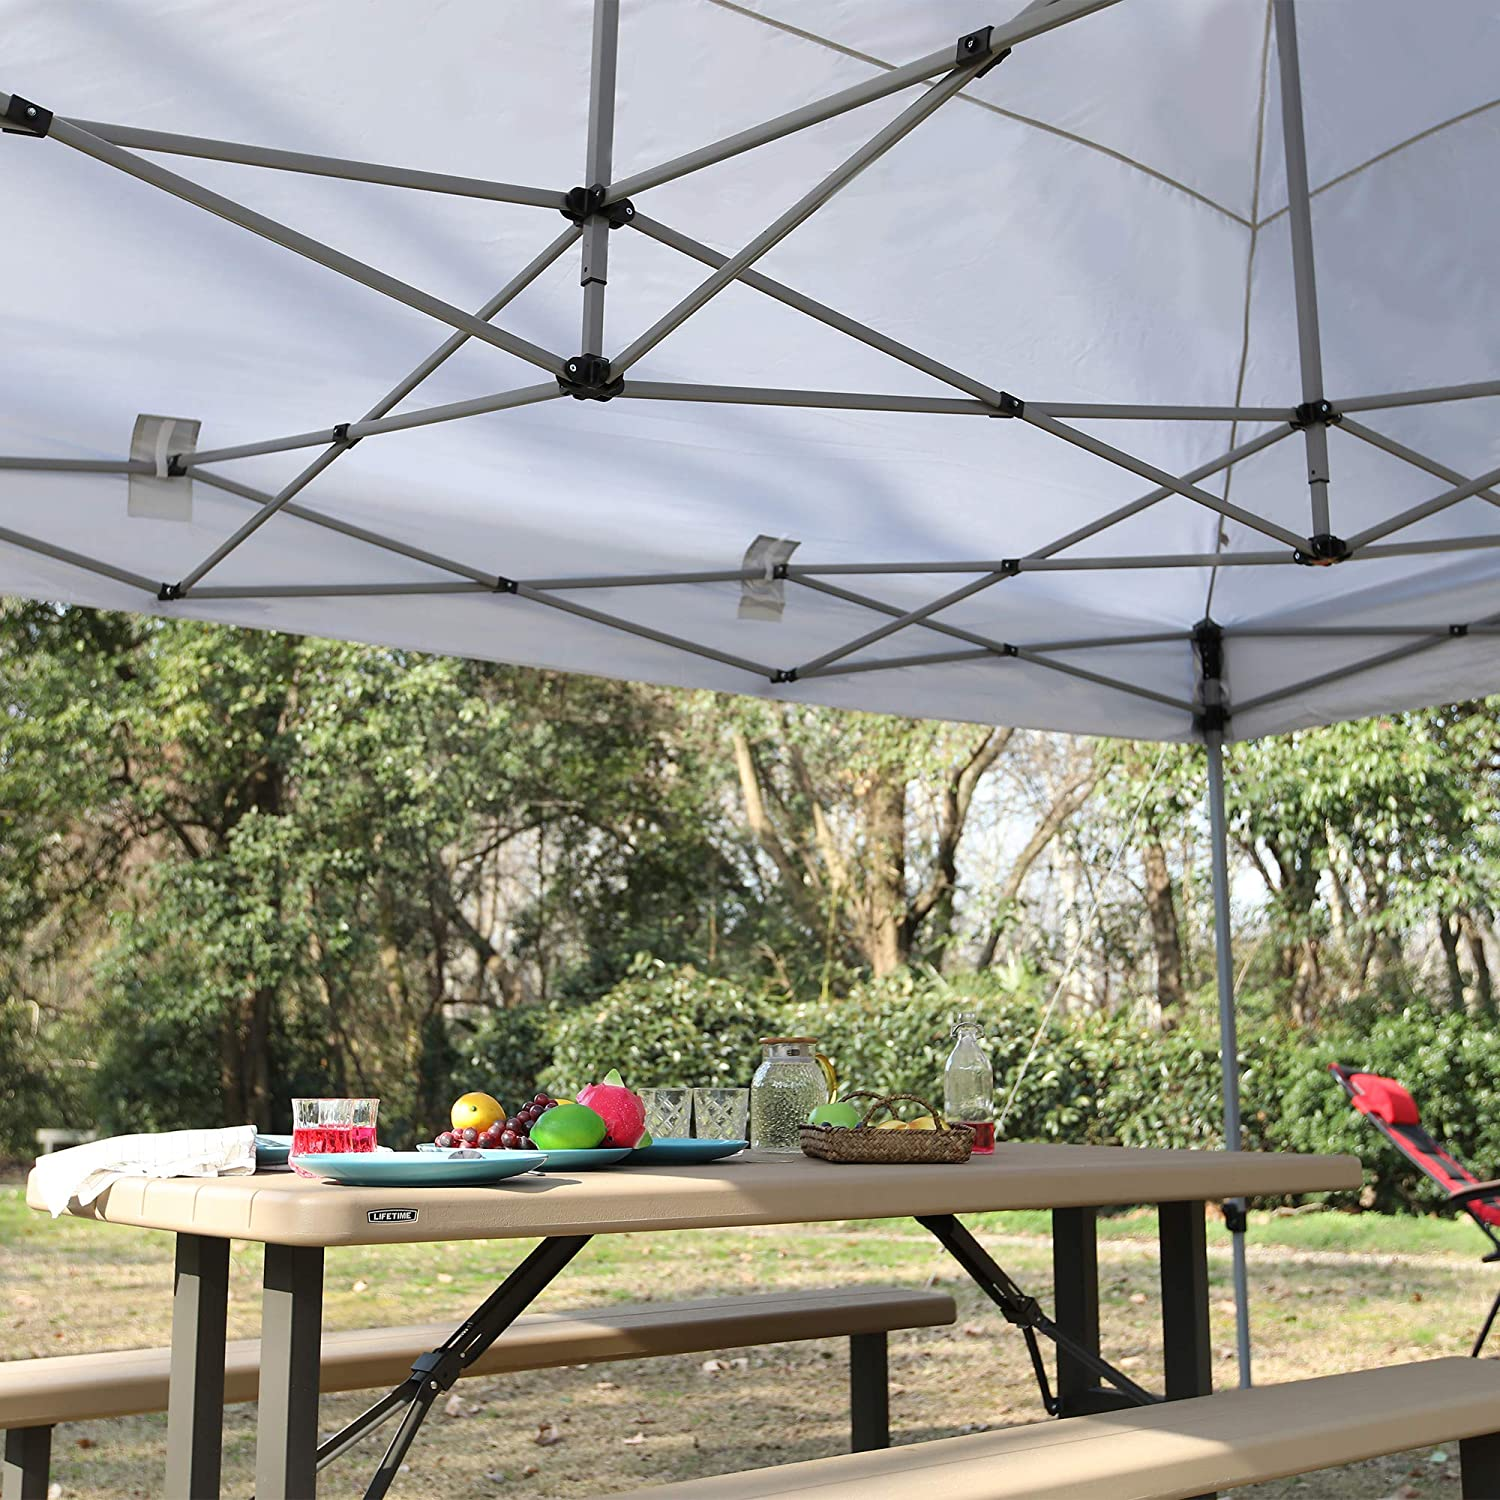 PHI VILLA 10 x 15 Straight Leg Pop-up Canopy for Backyard, Party, Event, 150 Sq. Ft of Shade, Instant Folding Canopy, White